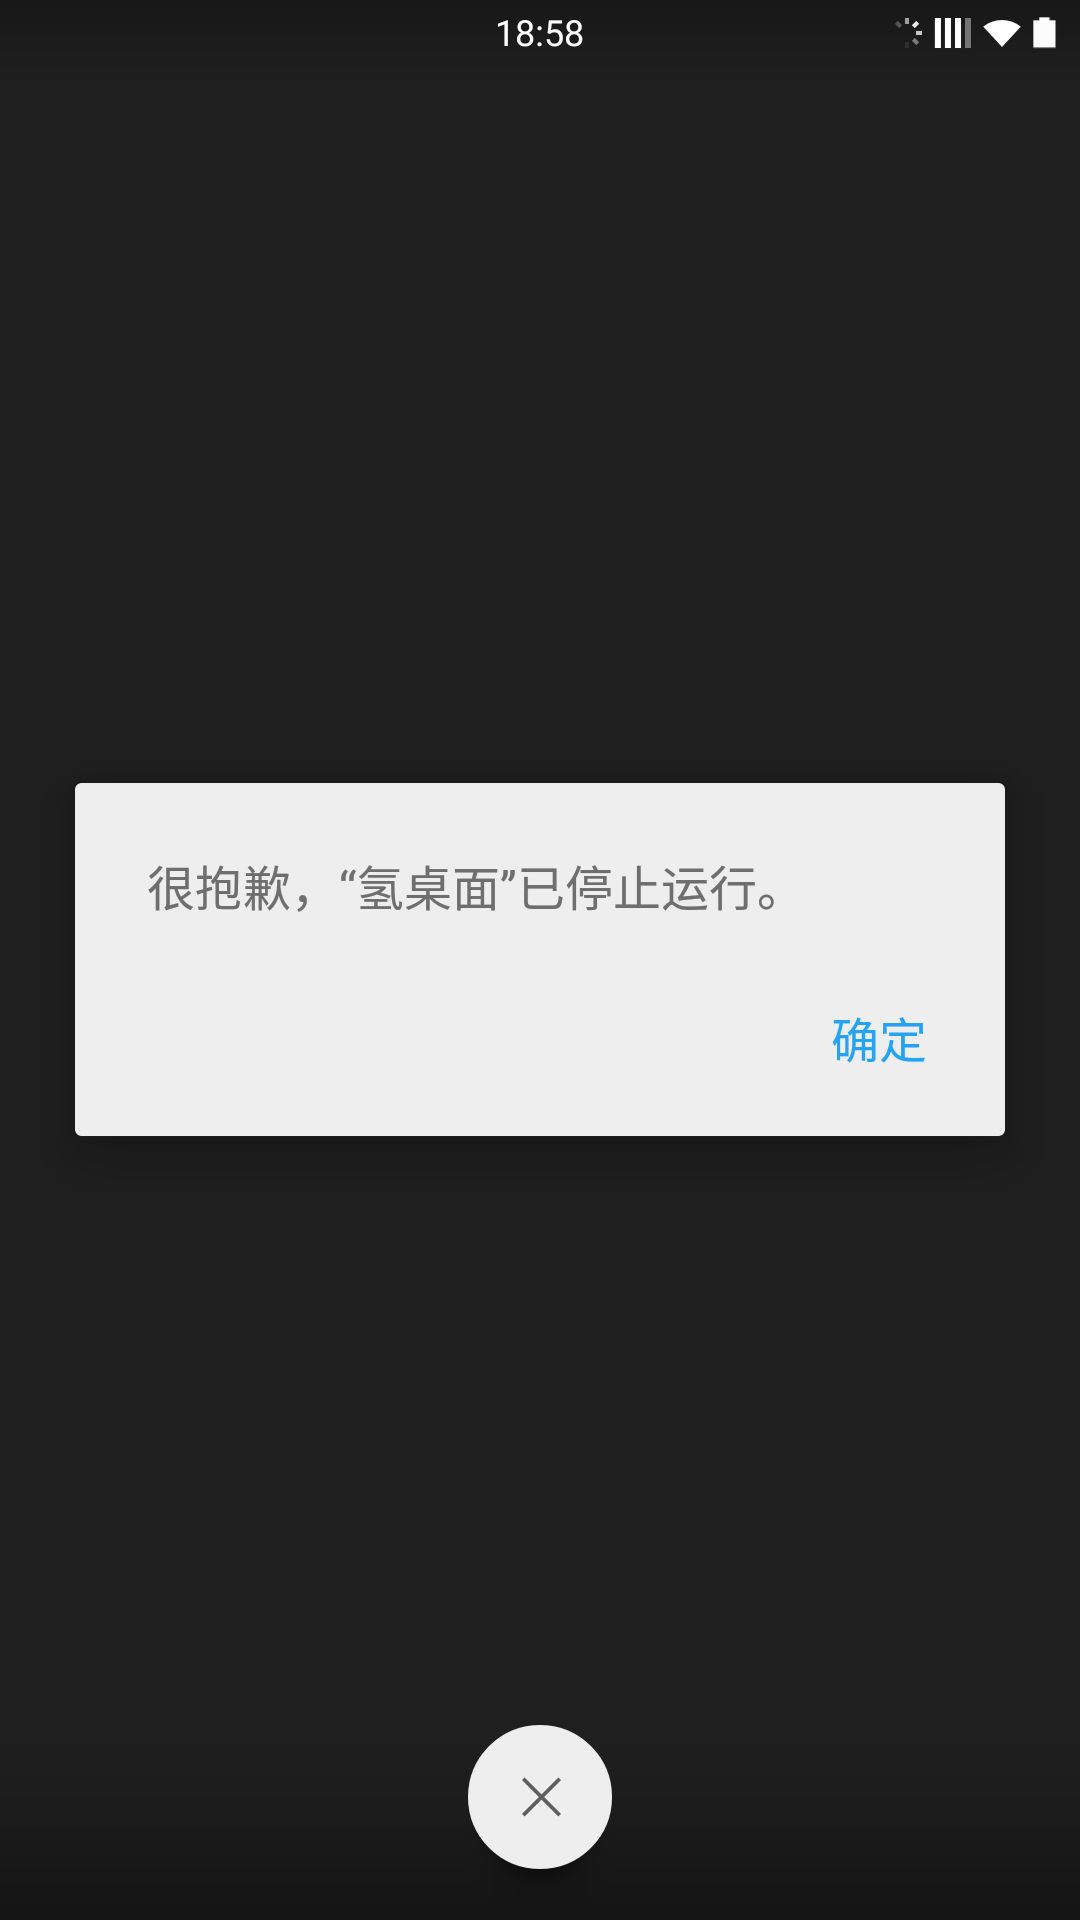 Screenshot_2015-06-28-18-58-28.png